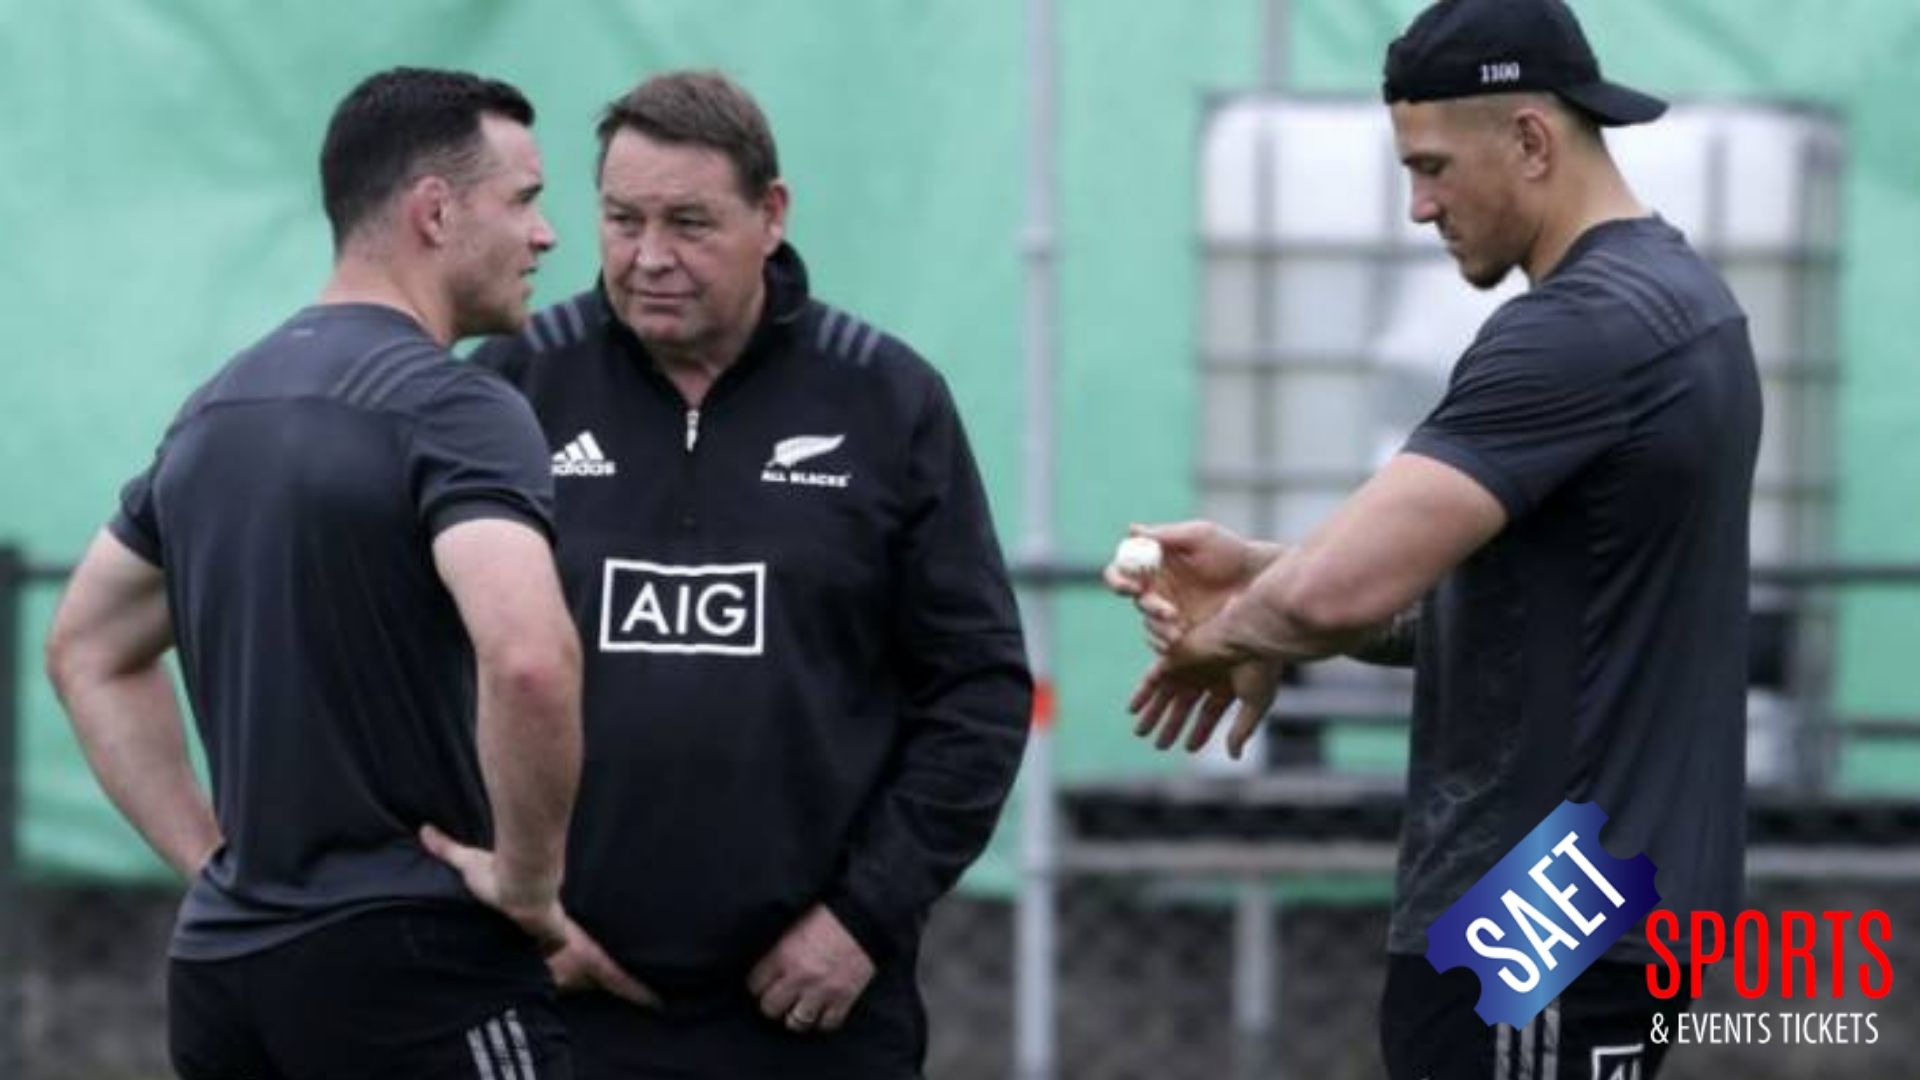 Japanese Training Camp Before Rugby World Cup All Blacks